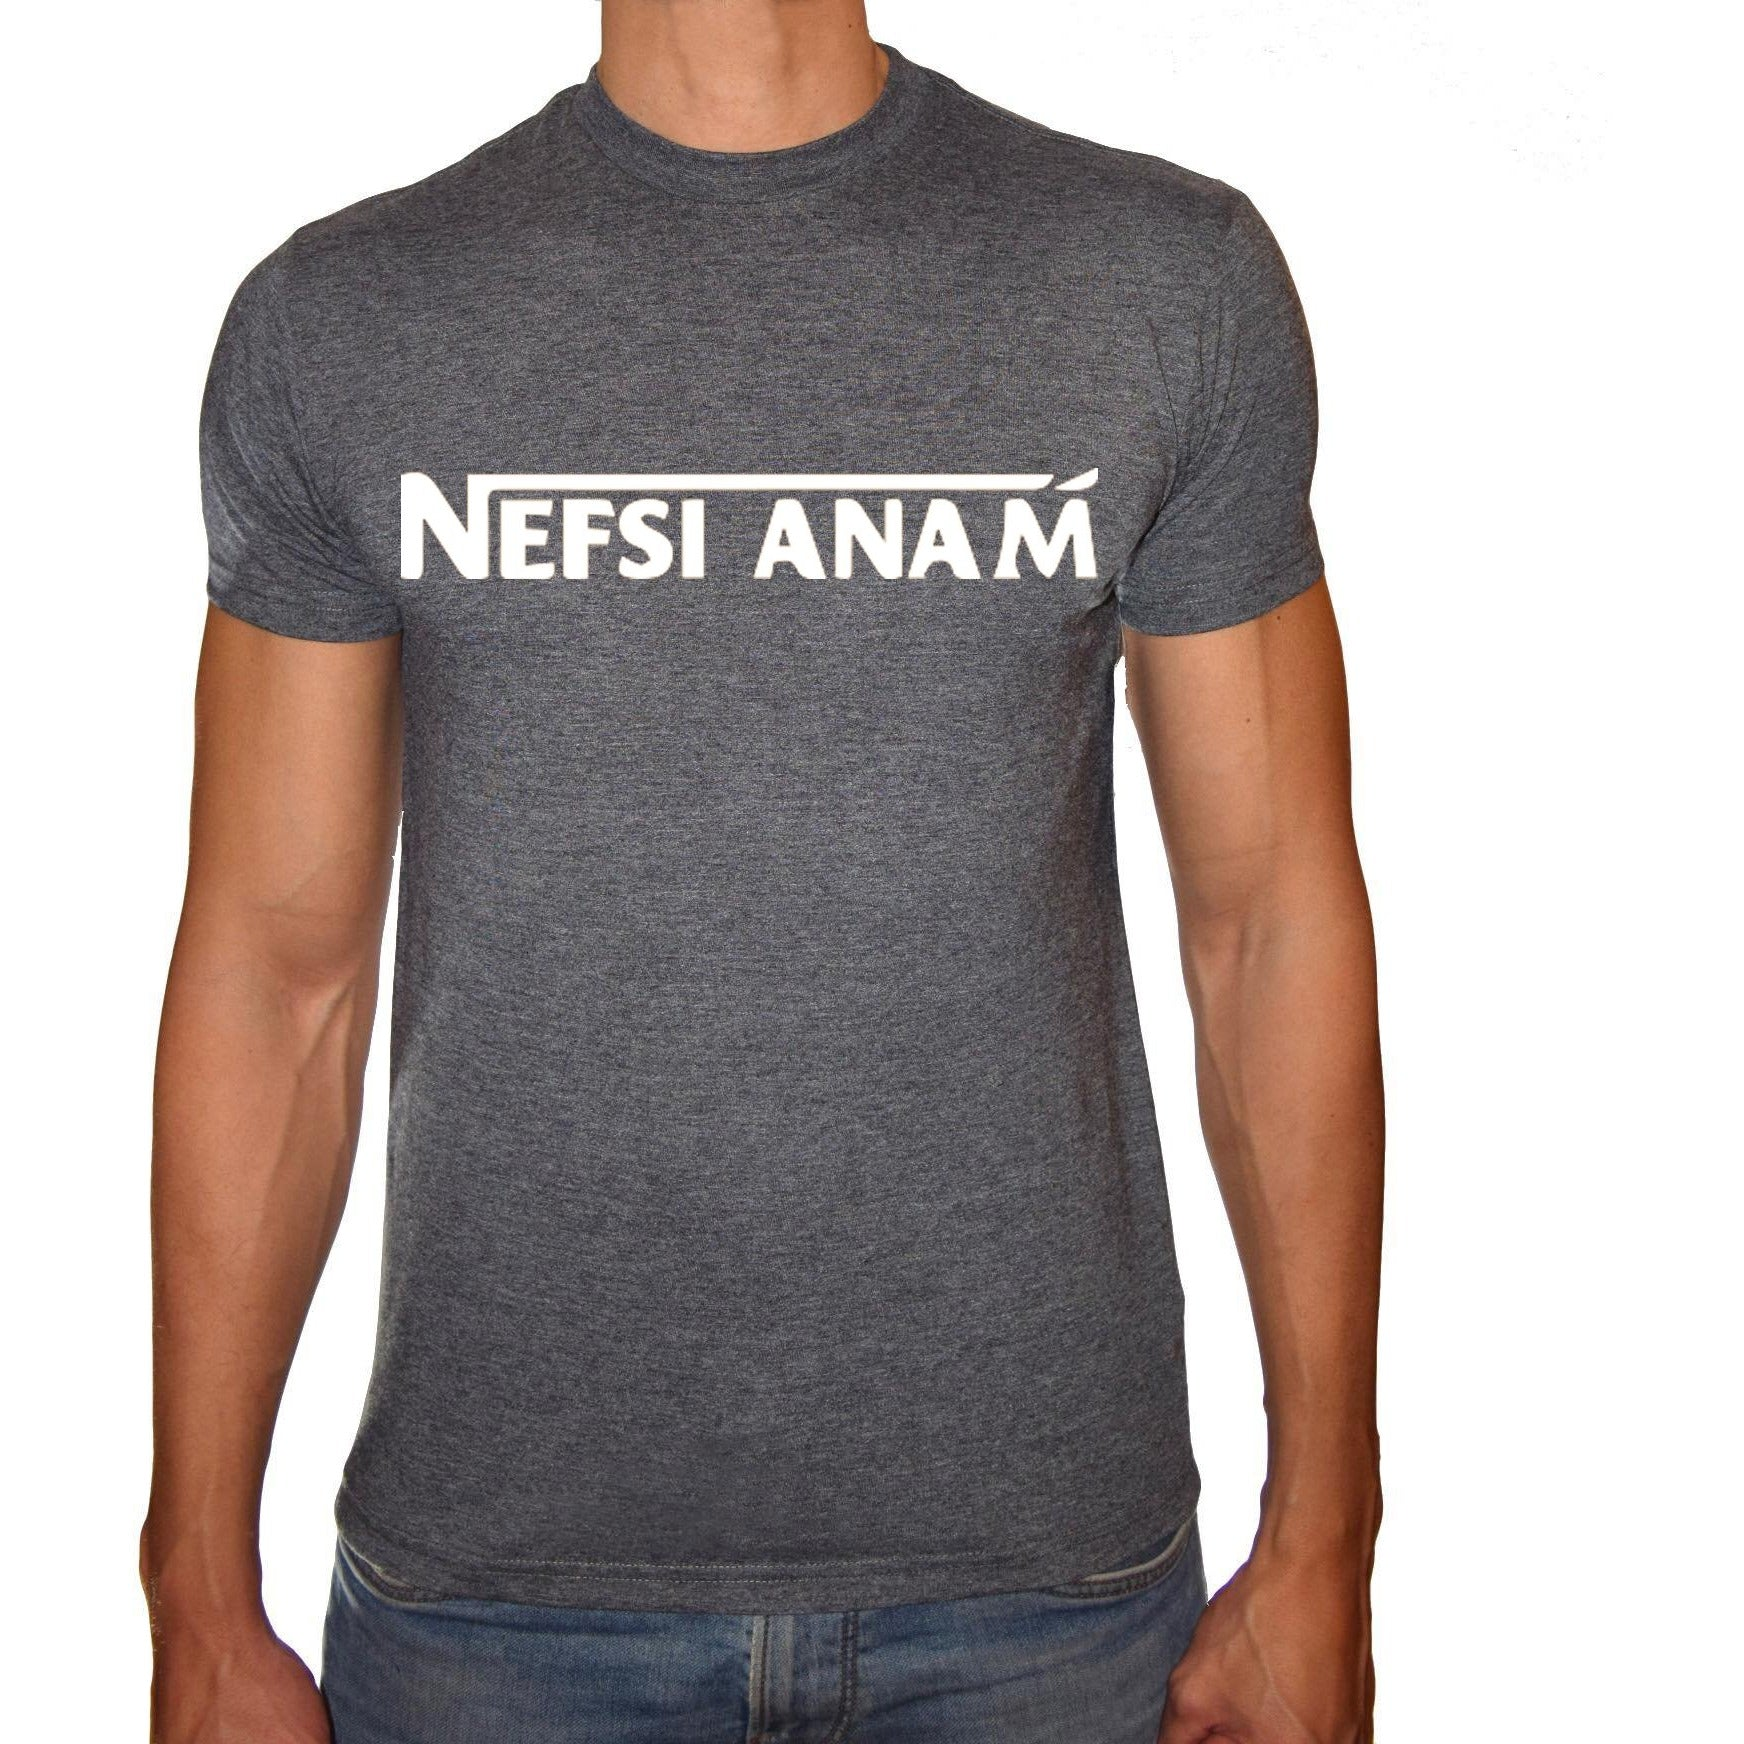 Phoenix CHARCOAL Round Neck Printed T-Shirt Men(nefsi anam)